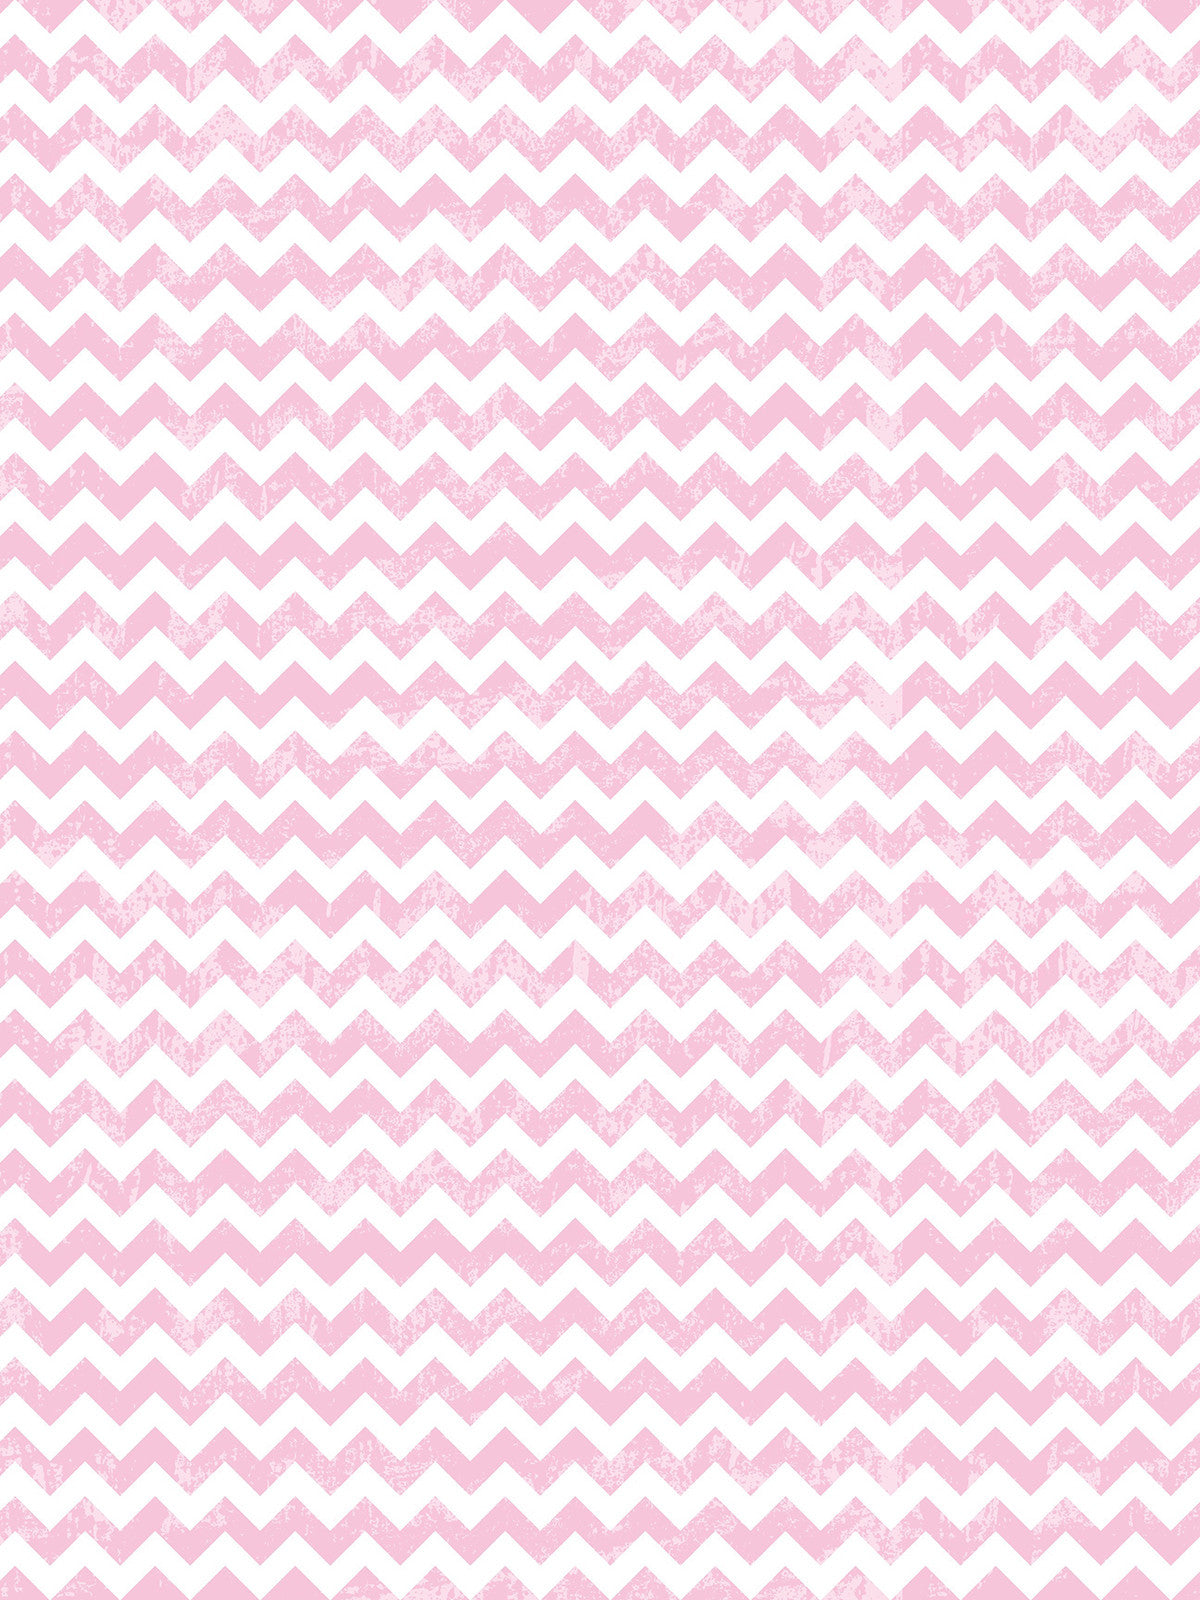 Distressed Cotton Candy Chevron Photo Background / 9813